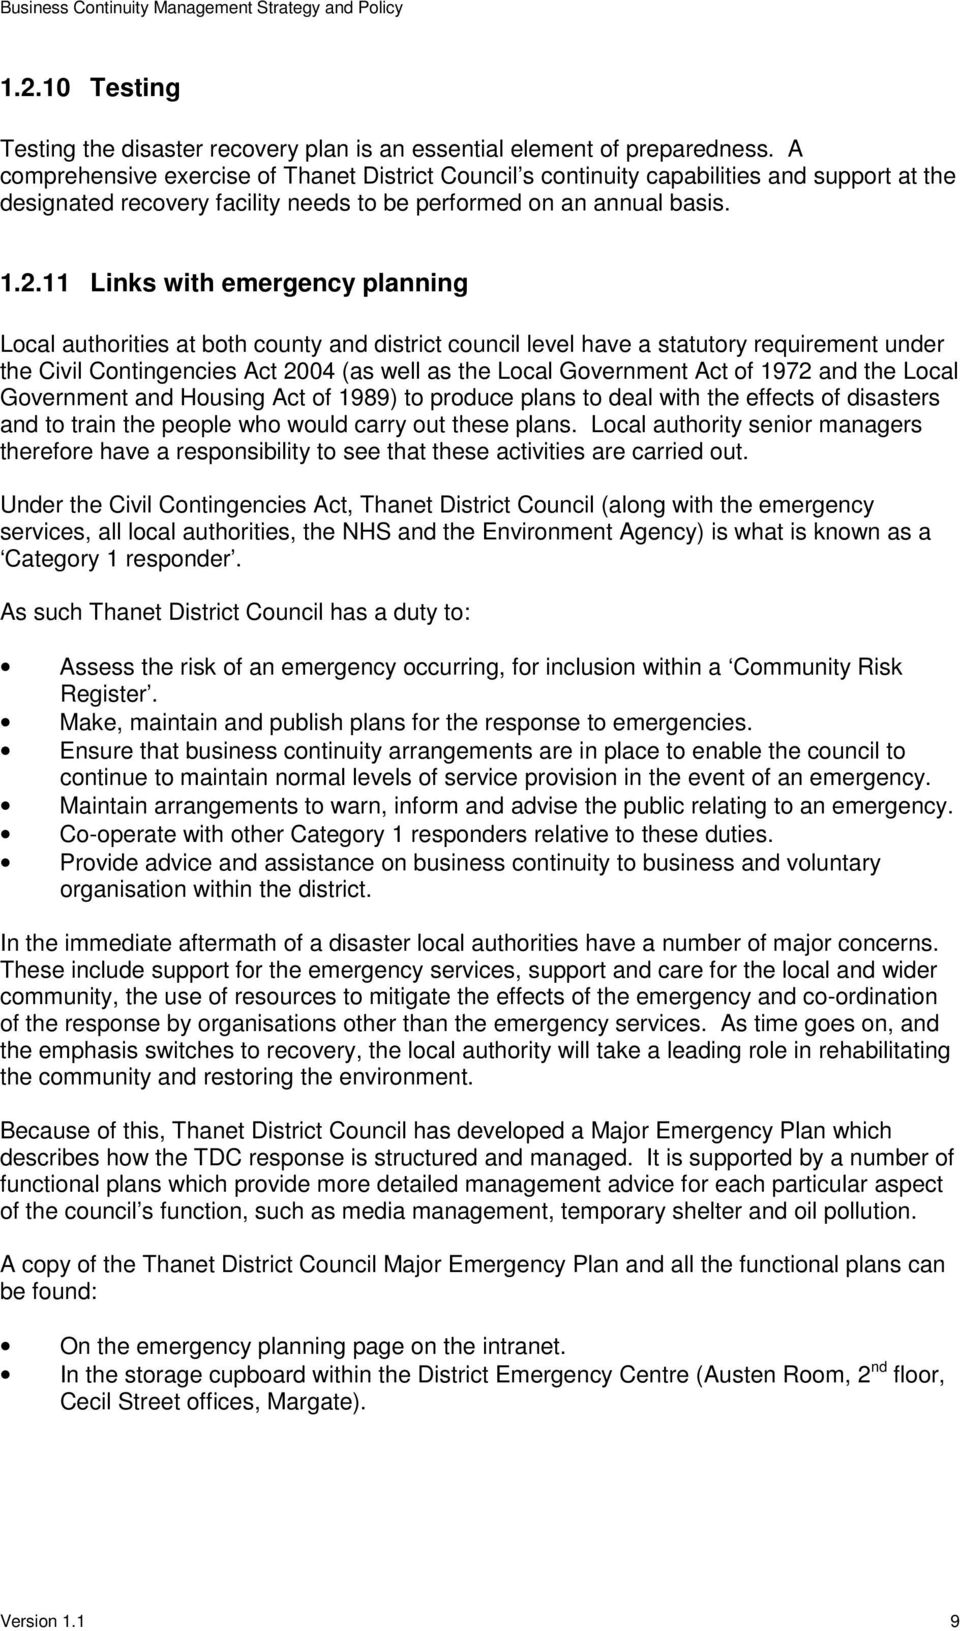 11 Links with emergency planning Local authorities at both county and district council level have a statutory requirement under the Civil Contingencies Act 2004 (as well as the Local Government Act